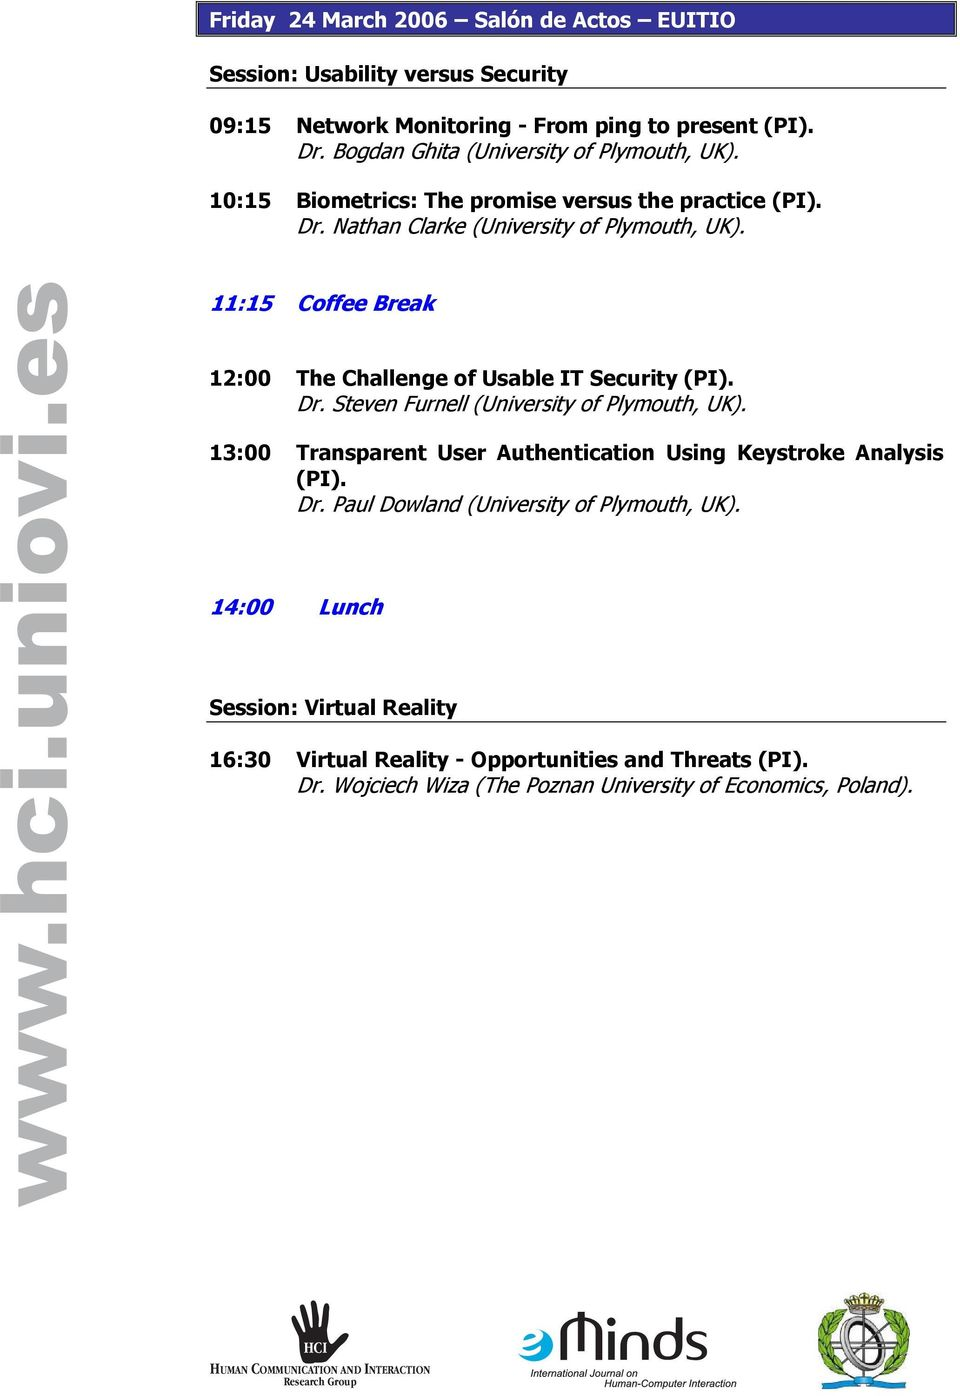 11:15 Coffee Break 12:00 The Challenge of Usable IT Security (PI). Dr. Steven Furnell (University of Plymouth, UK).